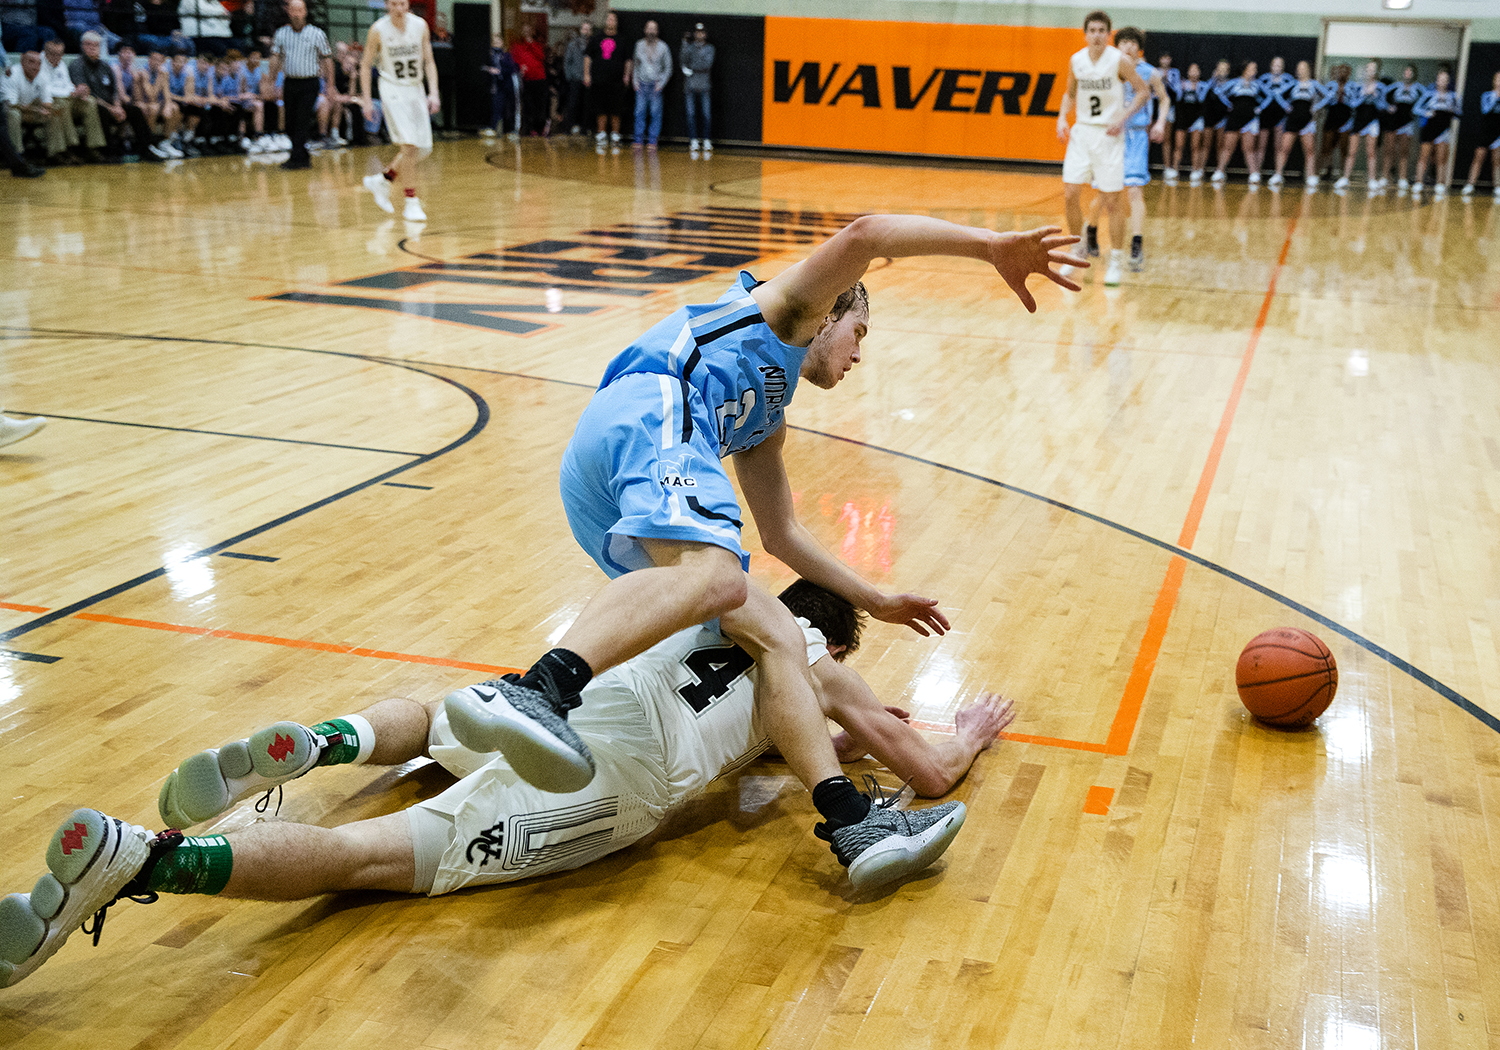 North Mac's Cole Etter trips over West Central's Ryan Moore as he lunges for a loose ball during the Waverly Holiday Tournament Friday, Dec. 28, 2018. [Ted Schurter/The State Journal-Register]